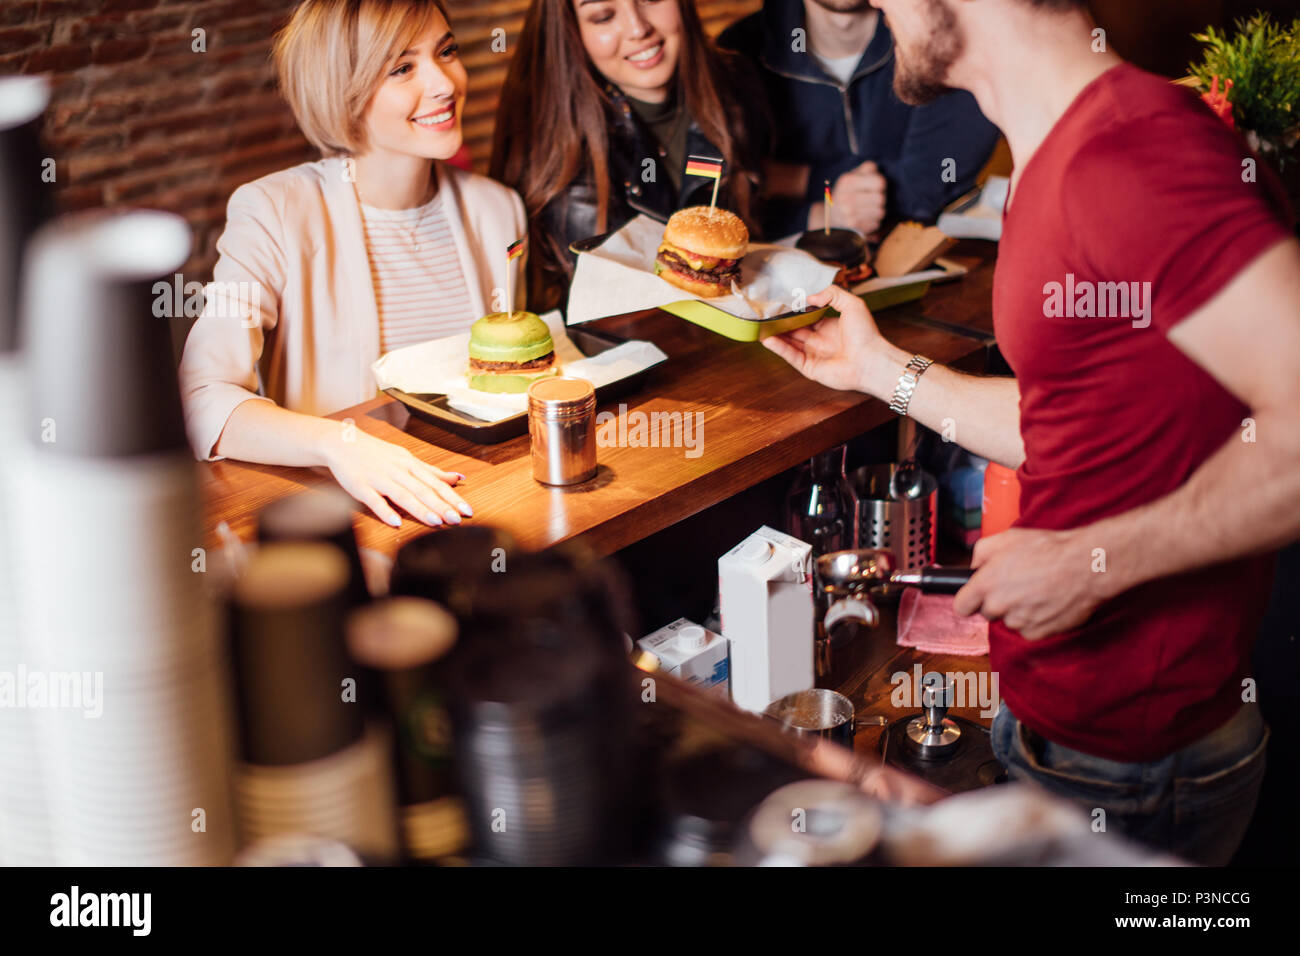 Youth, People, Leisure and Party concept - Stock Image